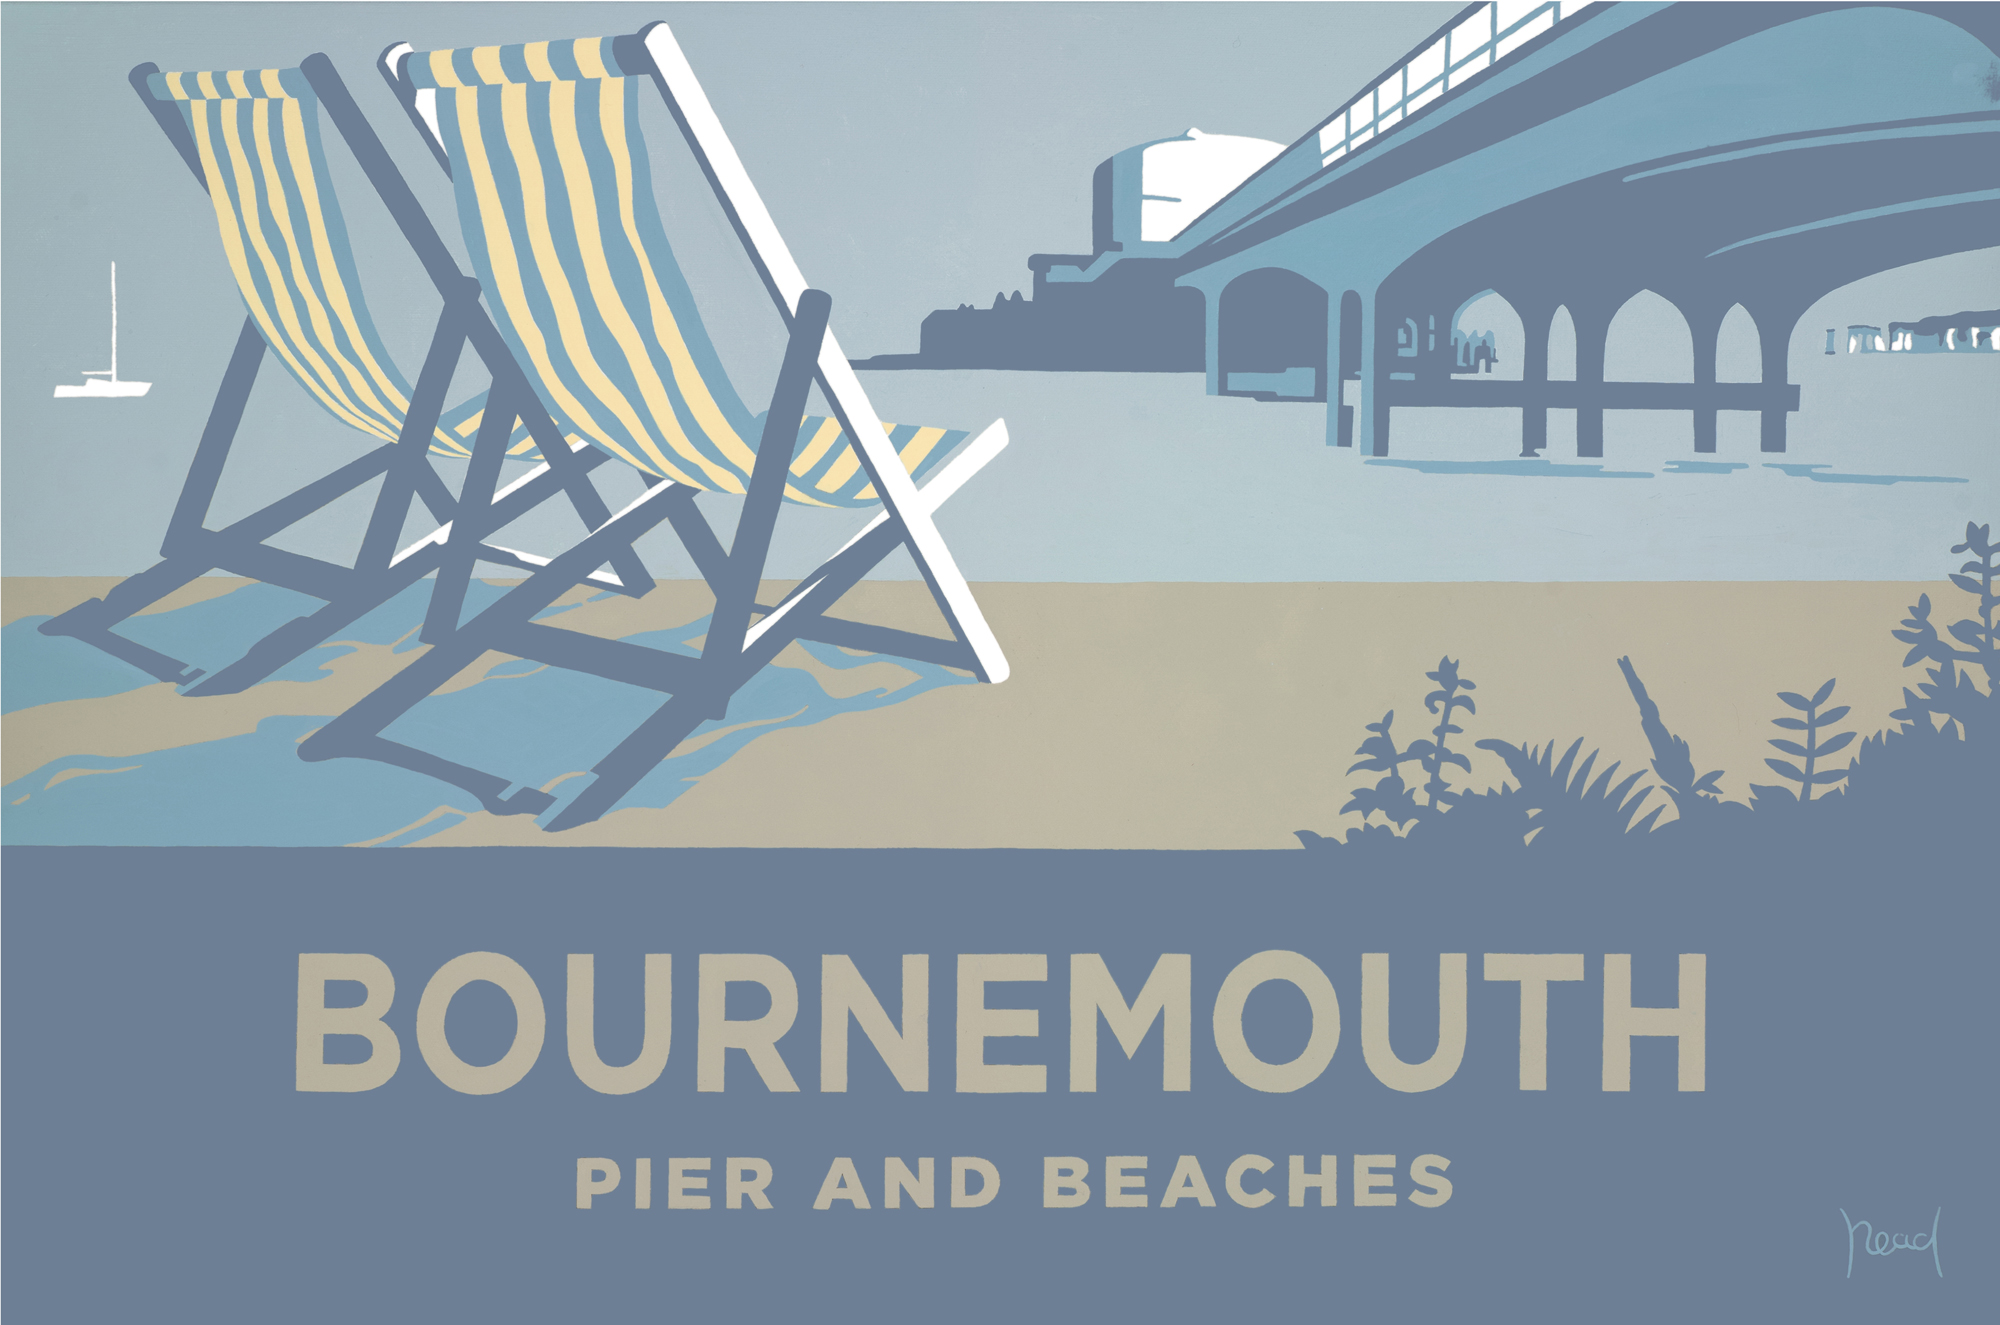 Steve Read Bournemouth Pier and Beaches £240